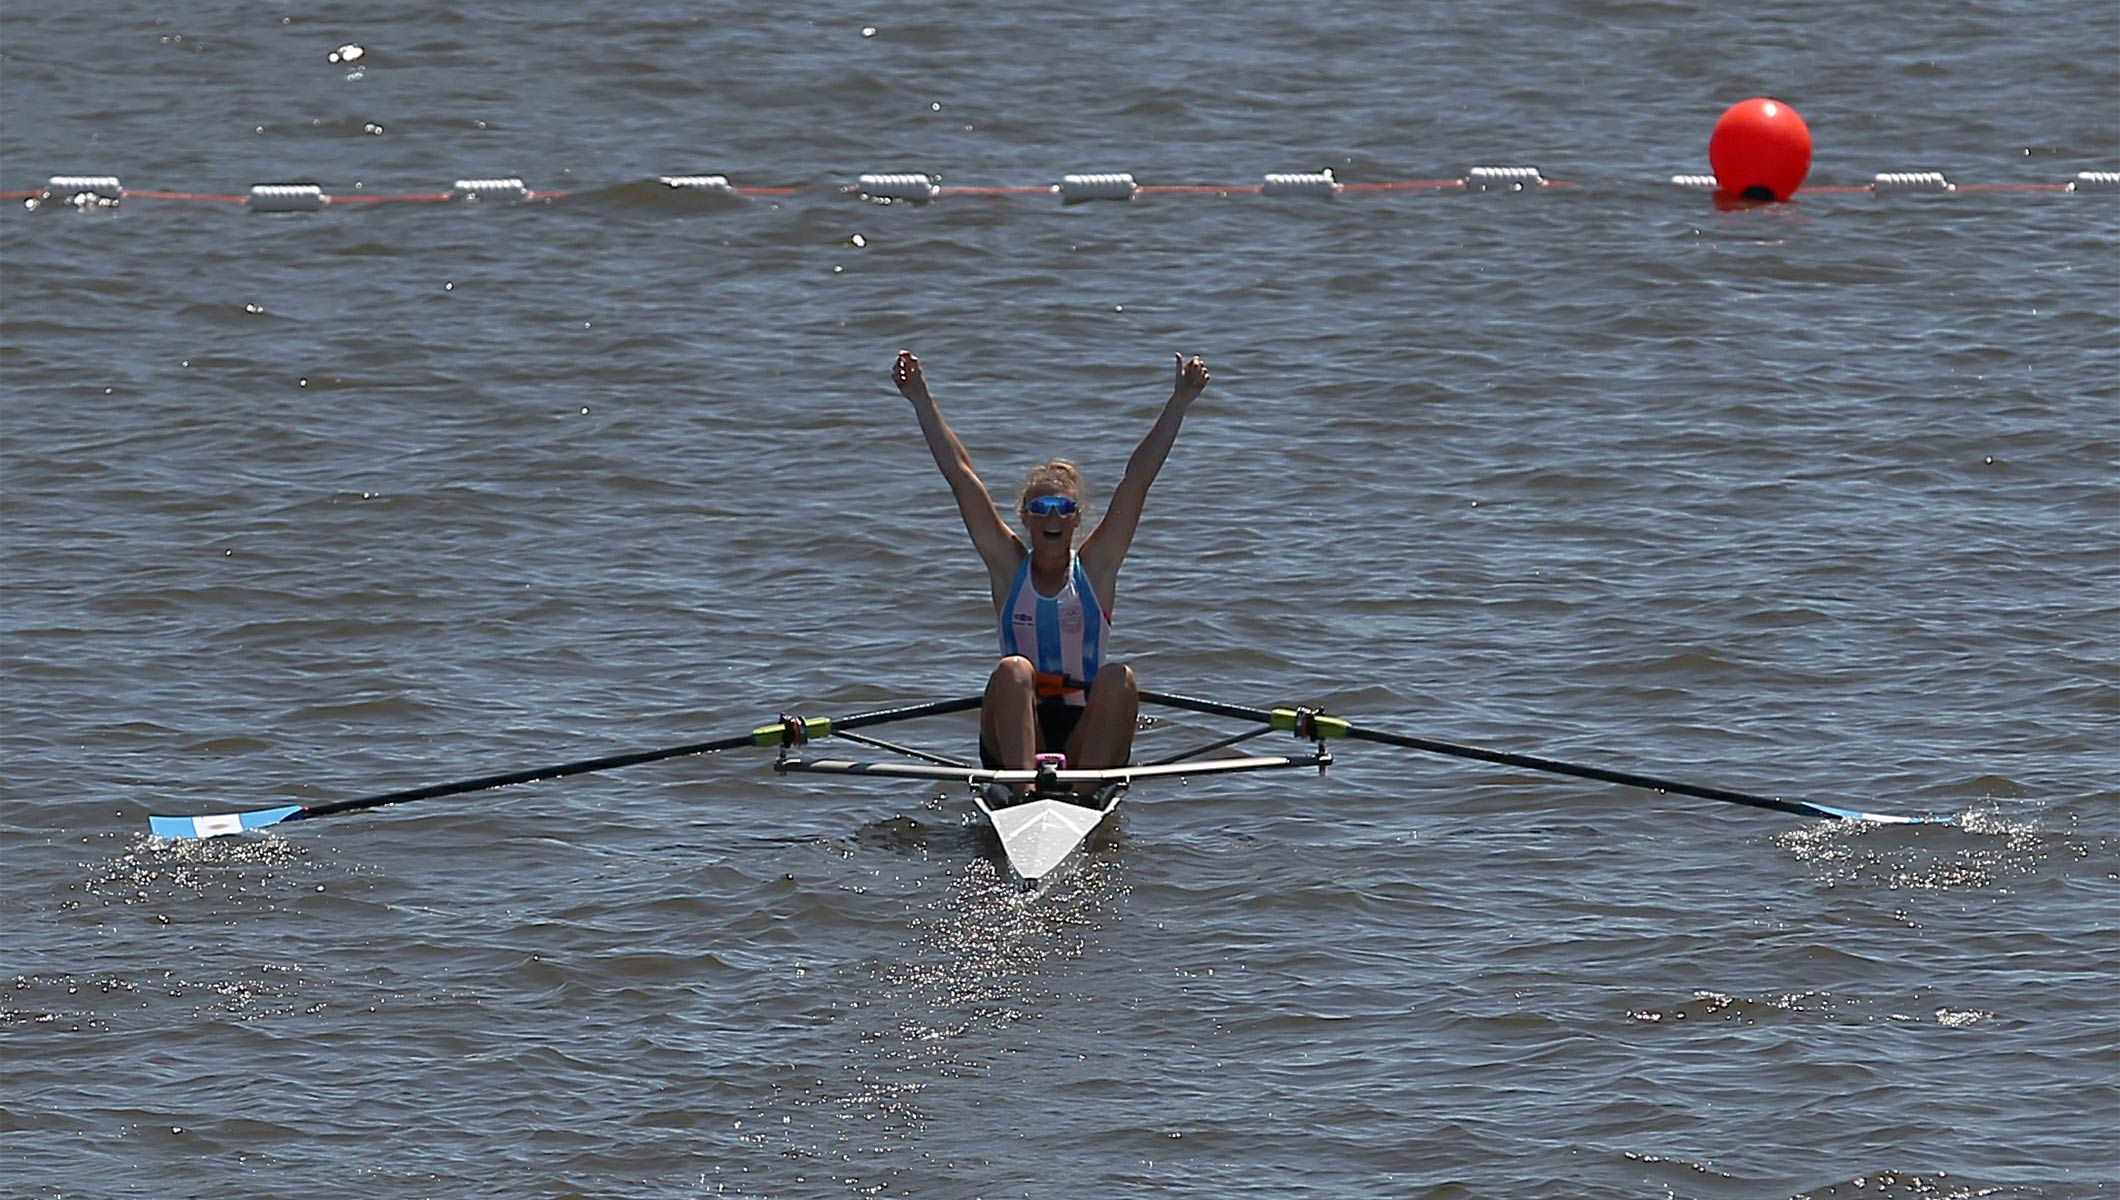 Olympic Rowing - News, Featured Stories, Photos - Olympic org